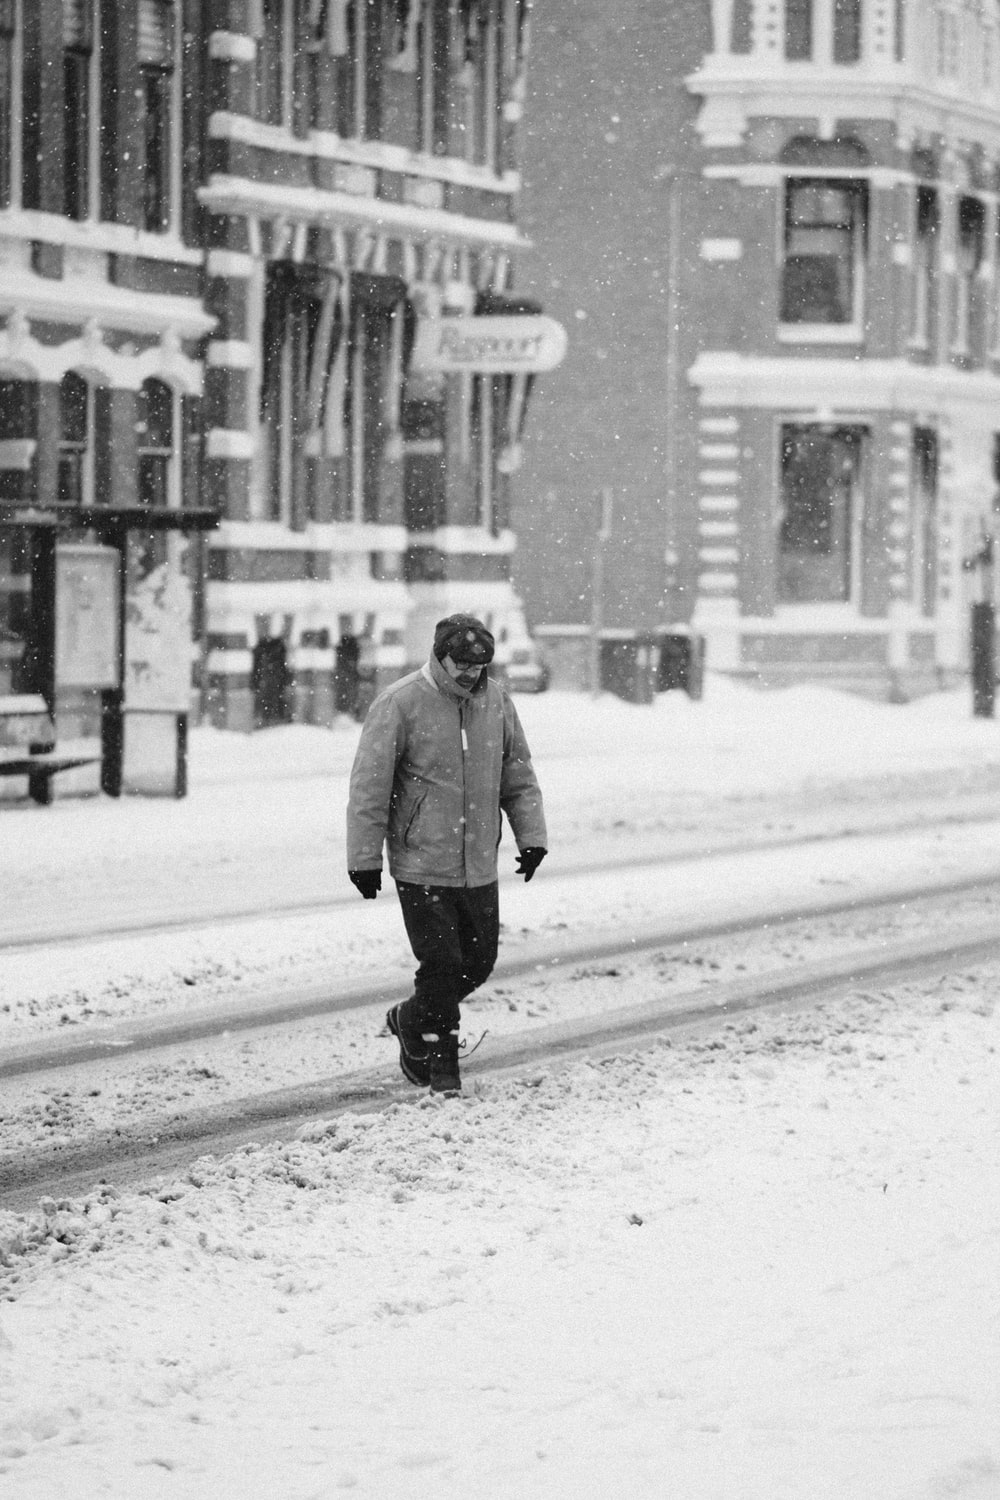 man in gray coat standing on snow covered ground